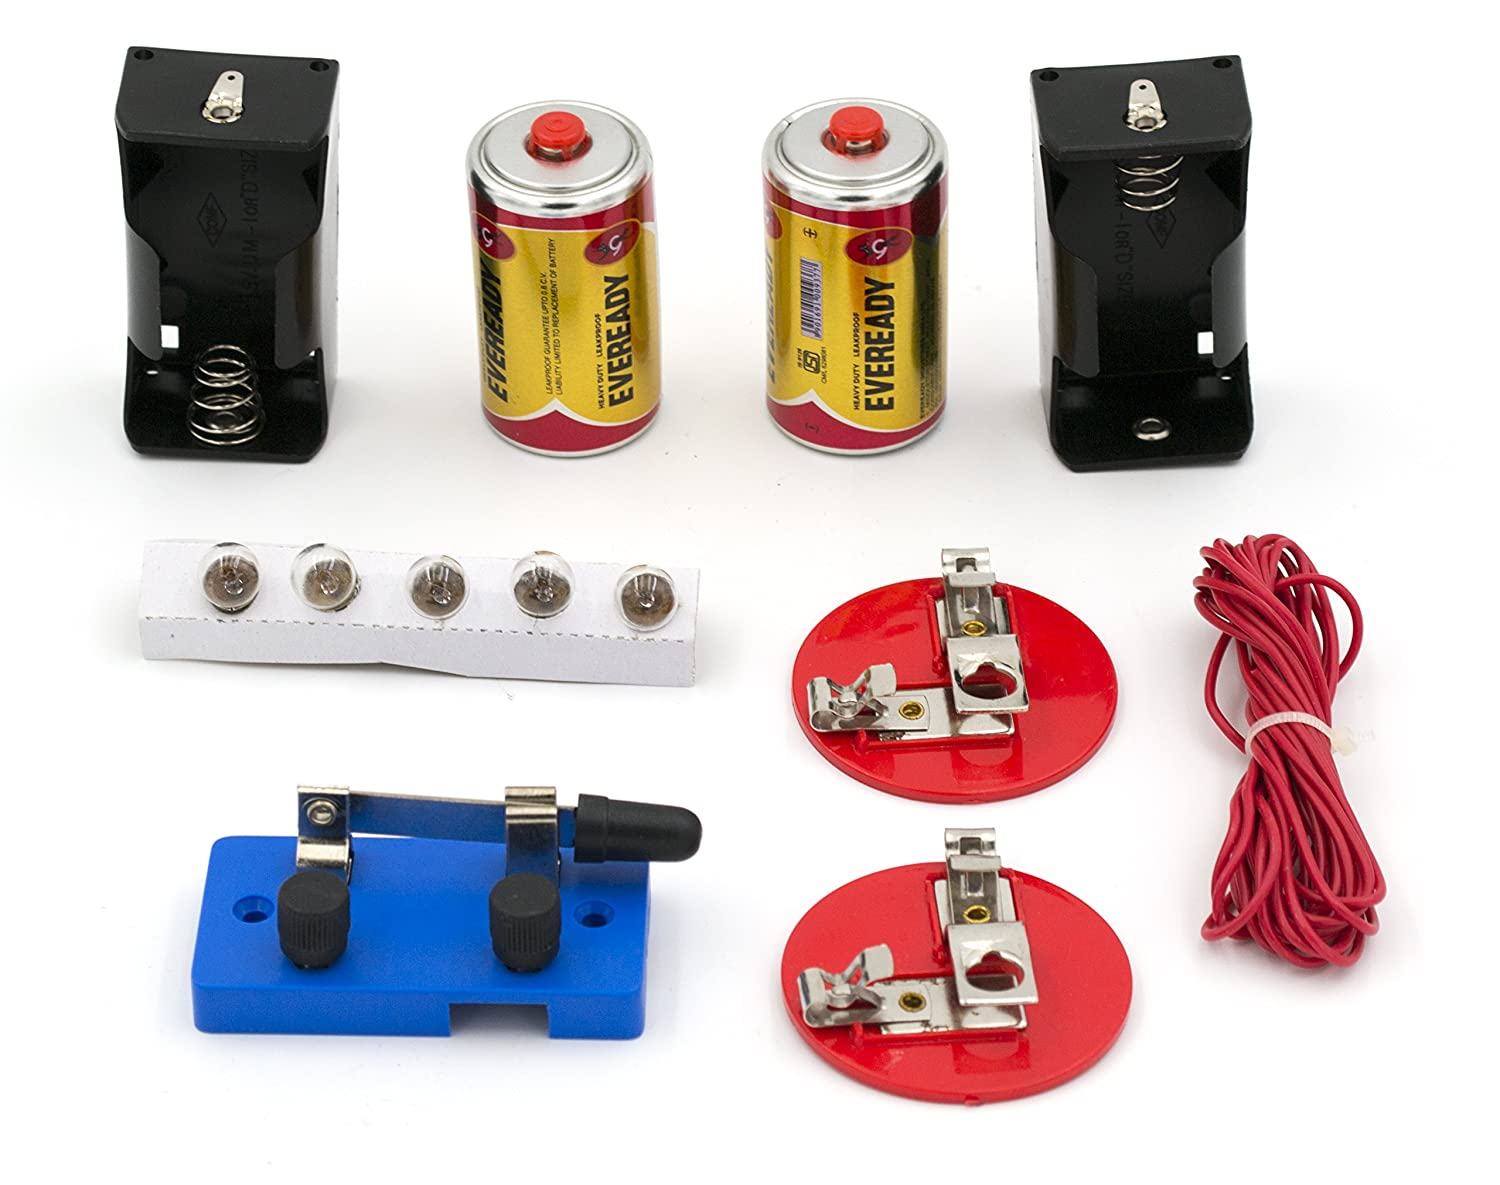 Eisco Labs Basic Beginner Circuit Kit For Teaching Series And Simple Parallel With A Battery Two Lightbulbs In Circuits Switch 2 D Batteries W Holders Light 5 Bulbs